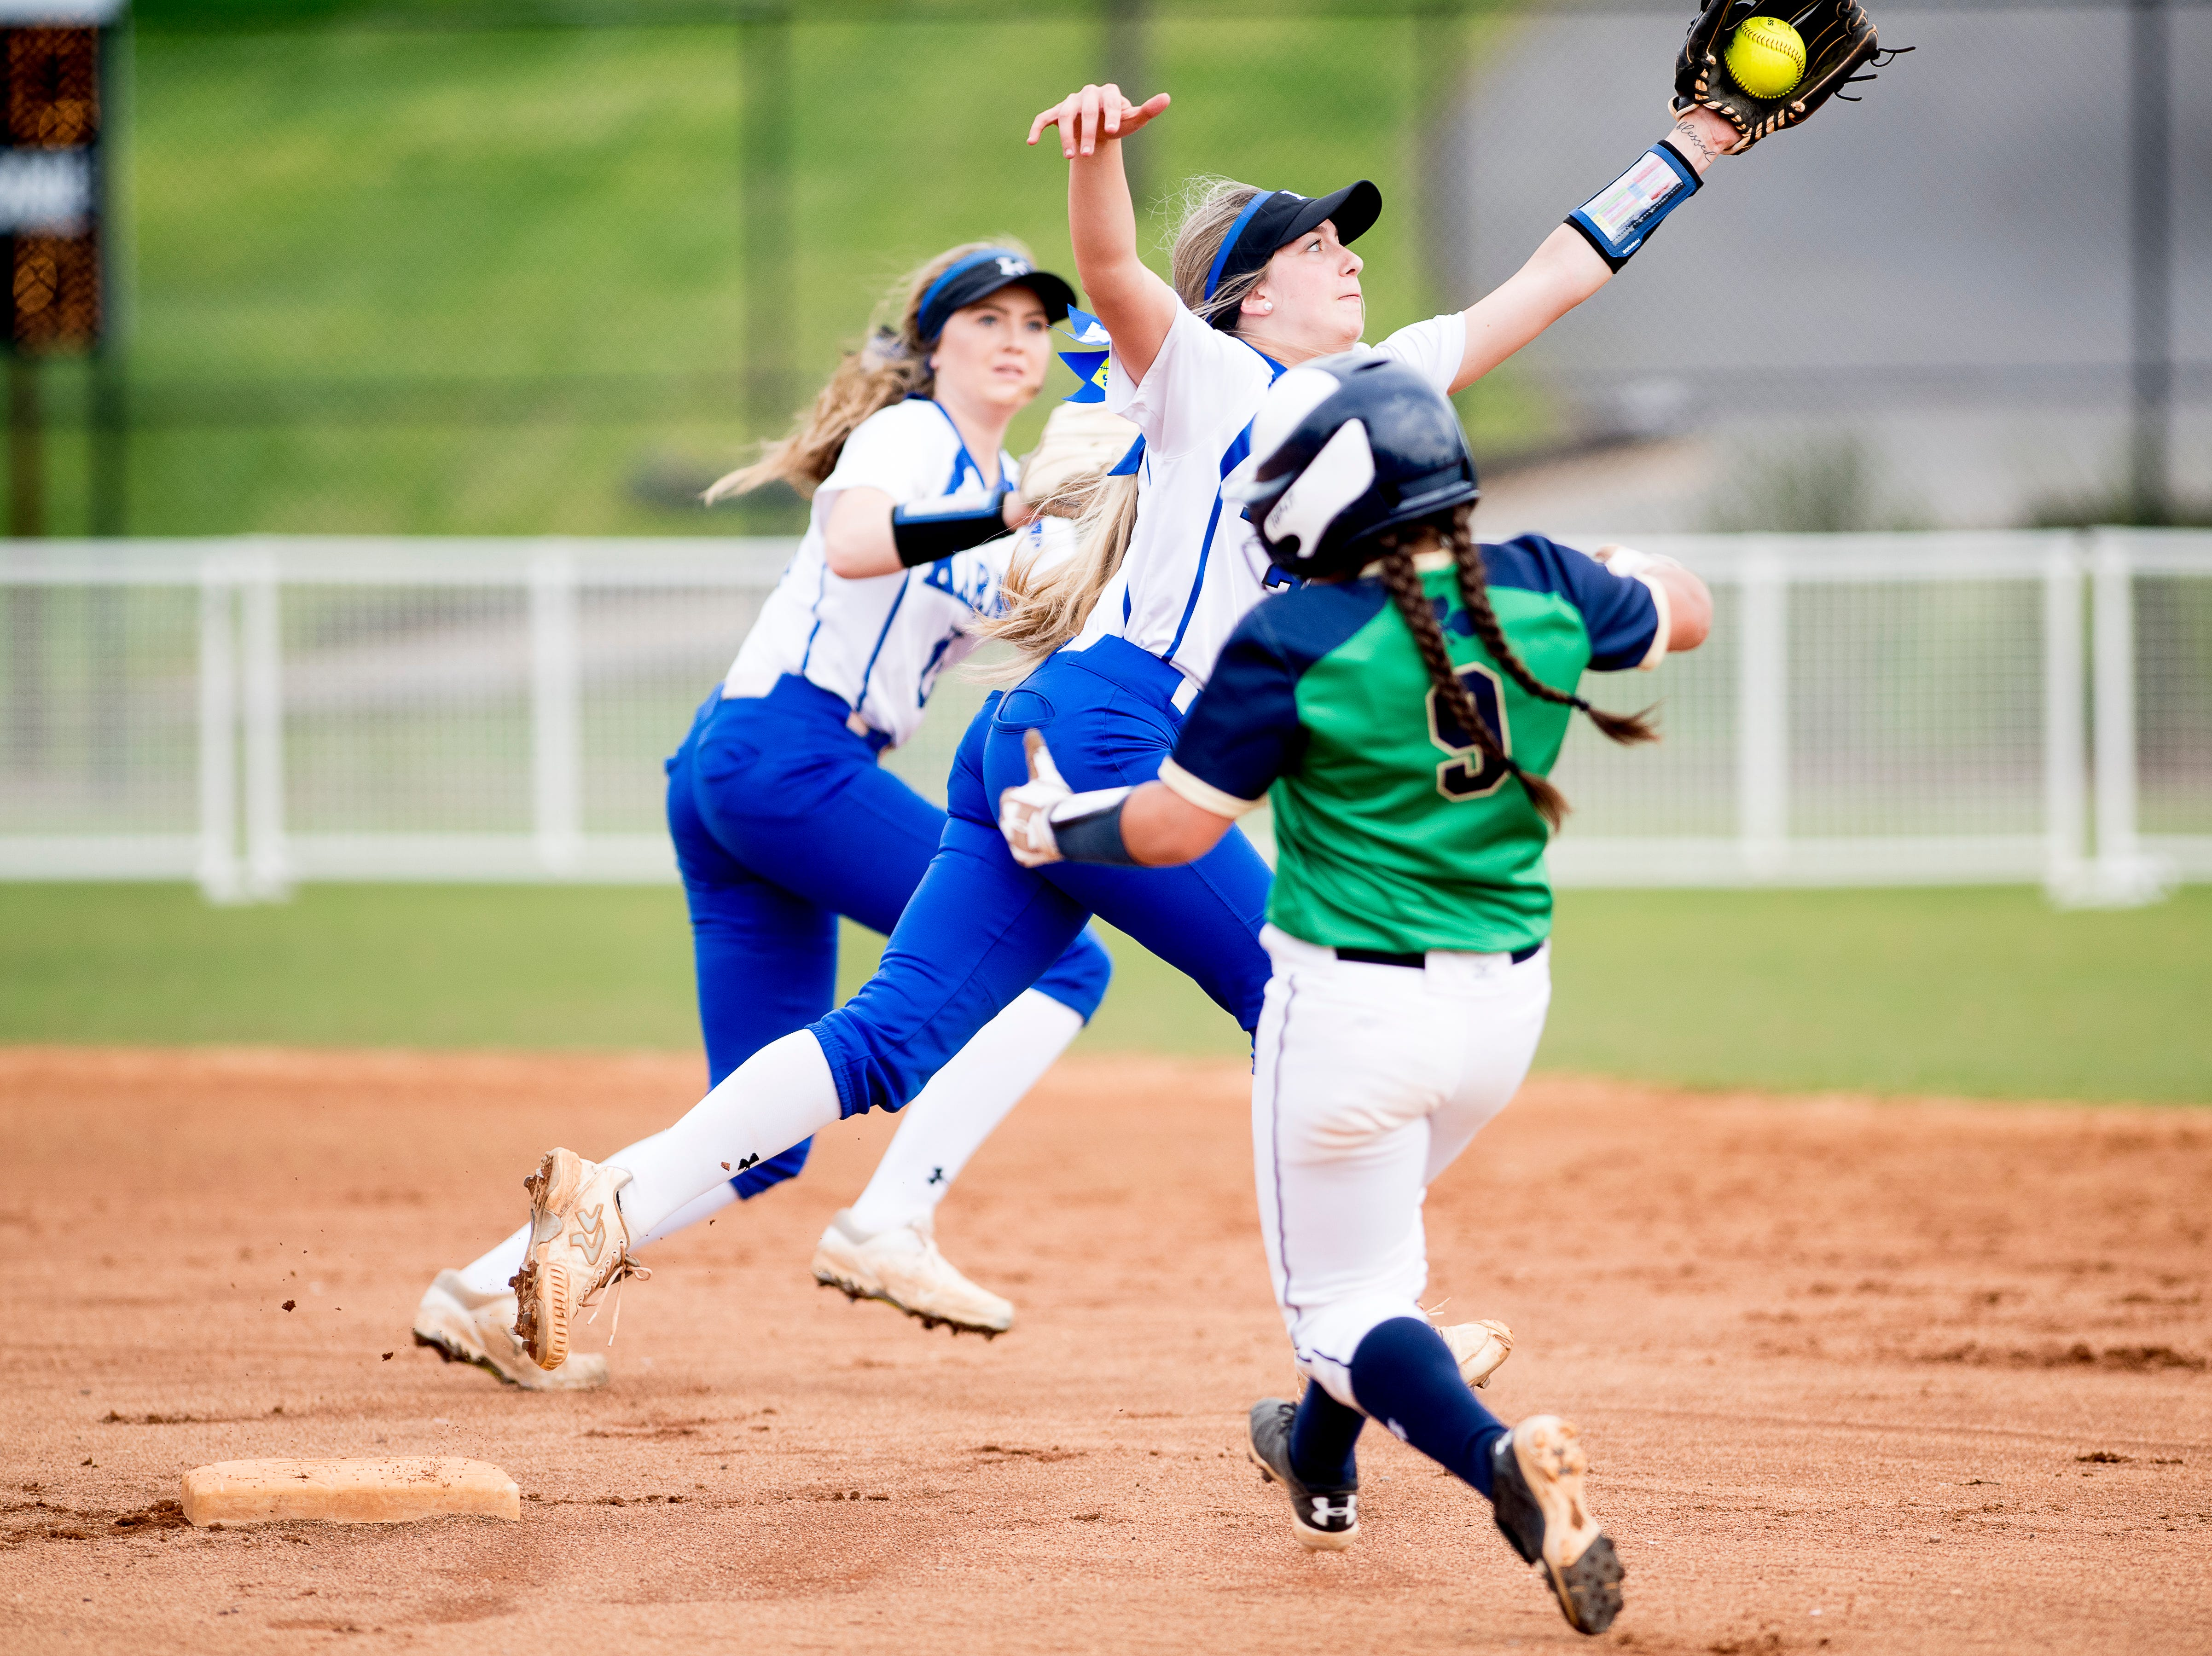 Karns' Jennifer Bezark (27) reaches for a throw to second as Catholic's Samantha Duffy (9) attempts a steal during a softball game between Catholic and Karns at Caswell Park in Knoxville, Tennessee on Friday, April 12, 2019.